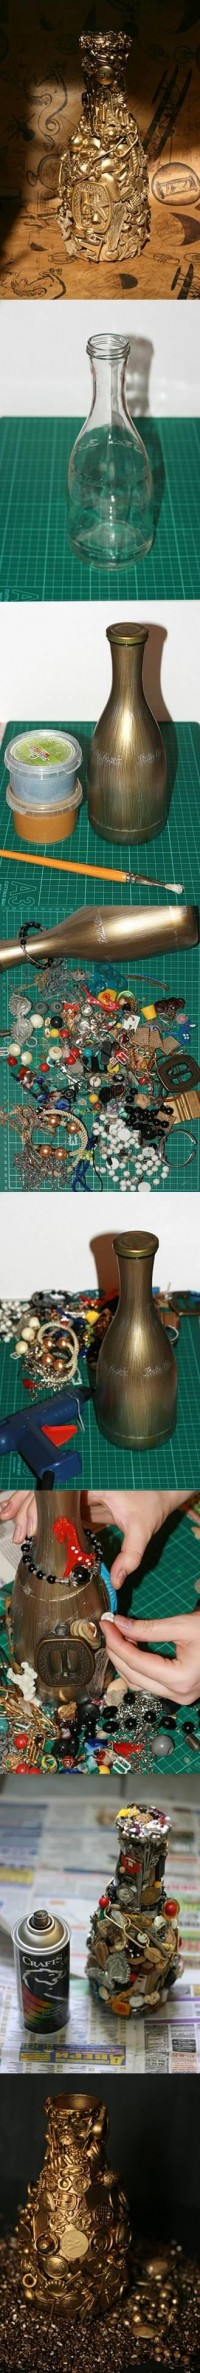 DIY Unwanted Things Decorated Bottle DIY Projects | UsefulDIY.com